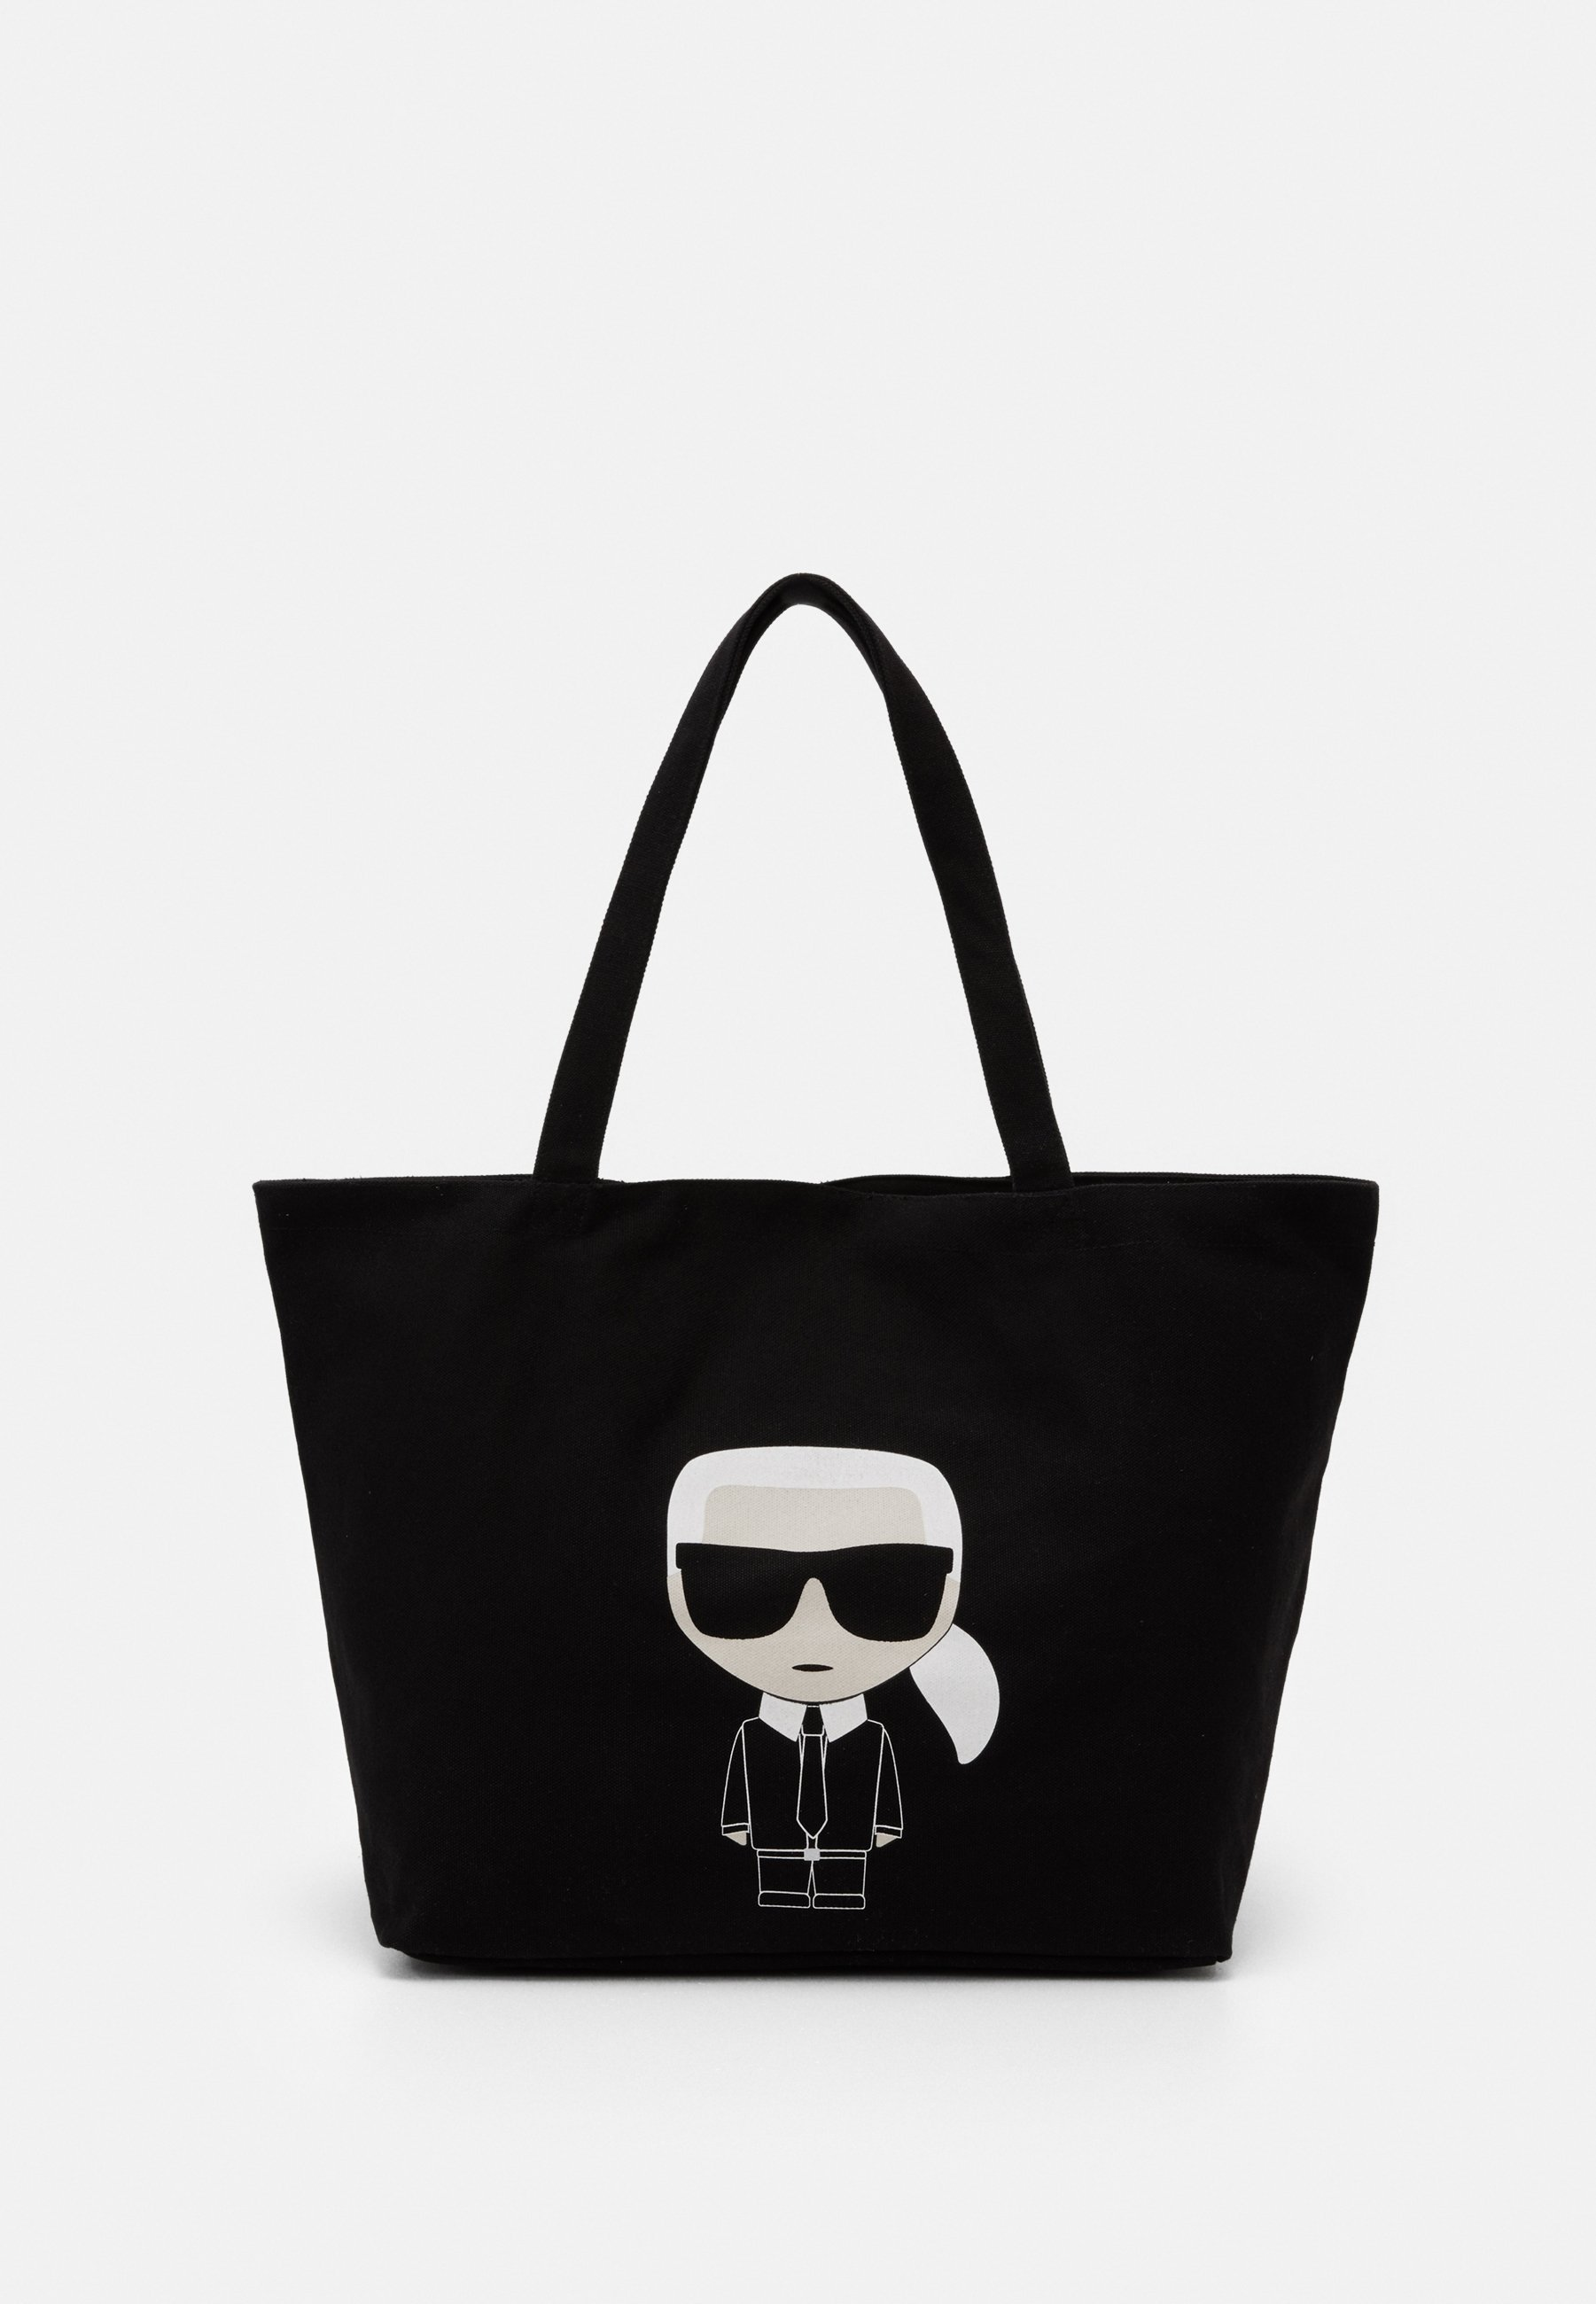 Karl Lagerfeld Ikonik Tote - Shopping Bag Black/schwarz